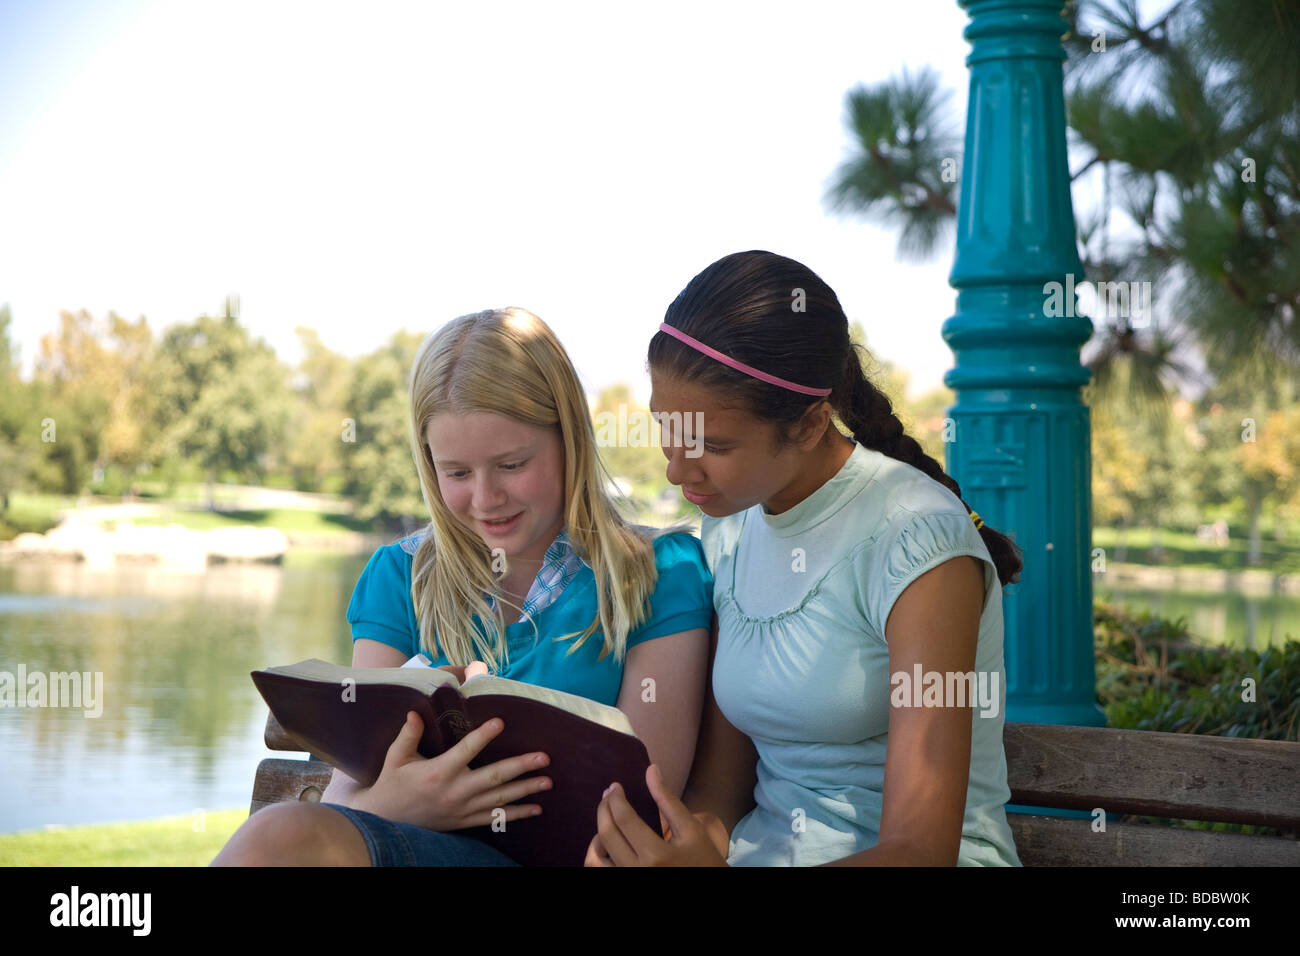 2 girls reading a dirty magazine - 2 1